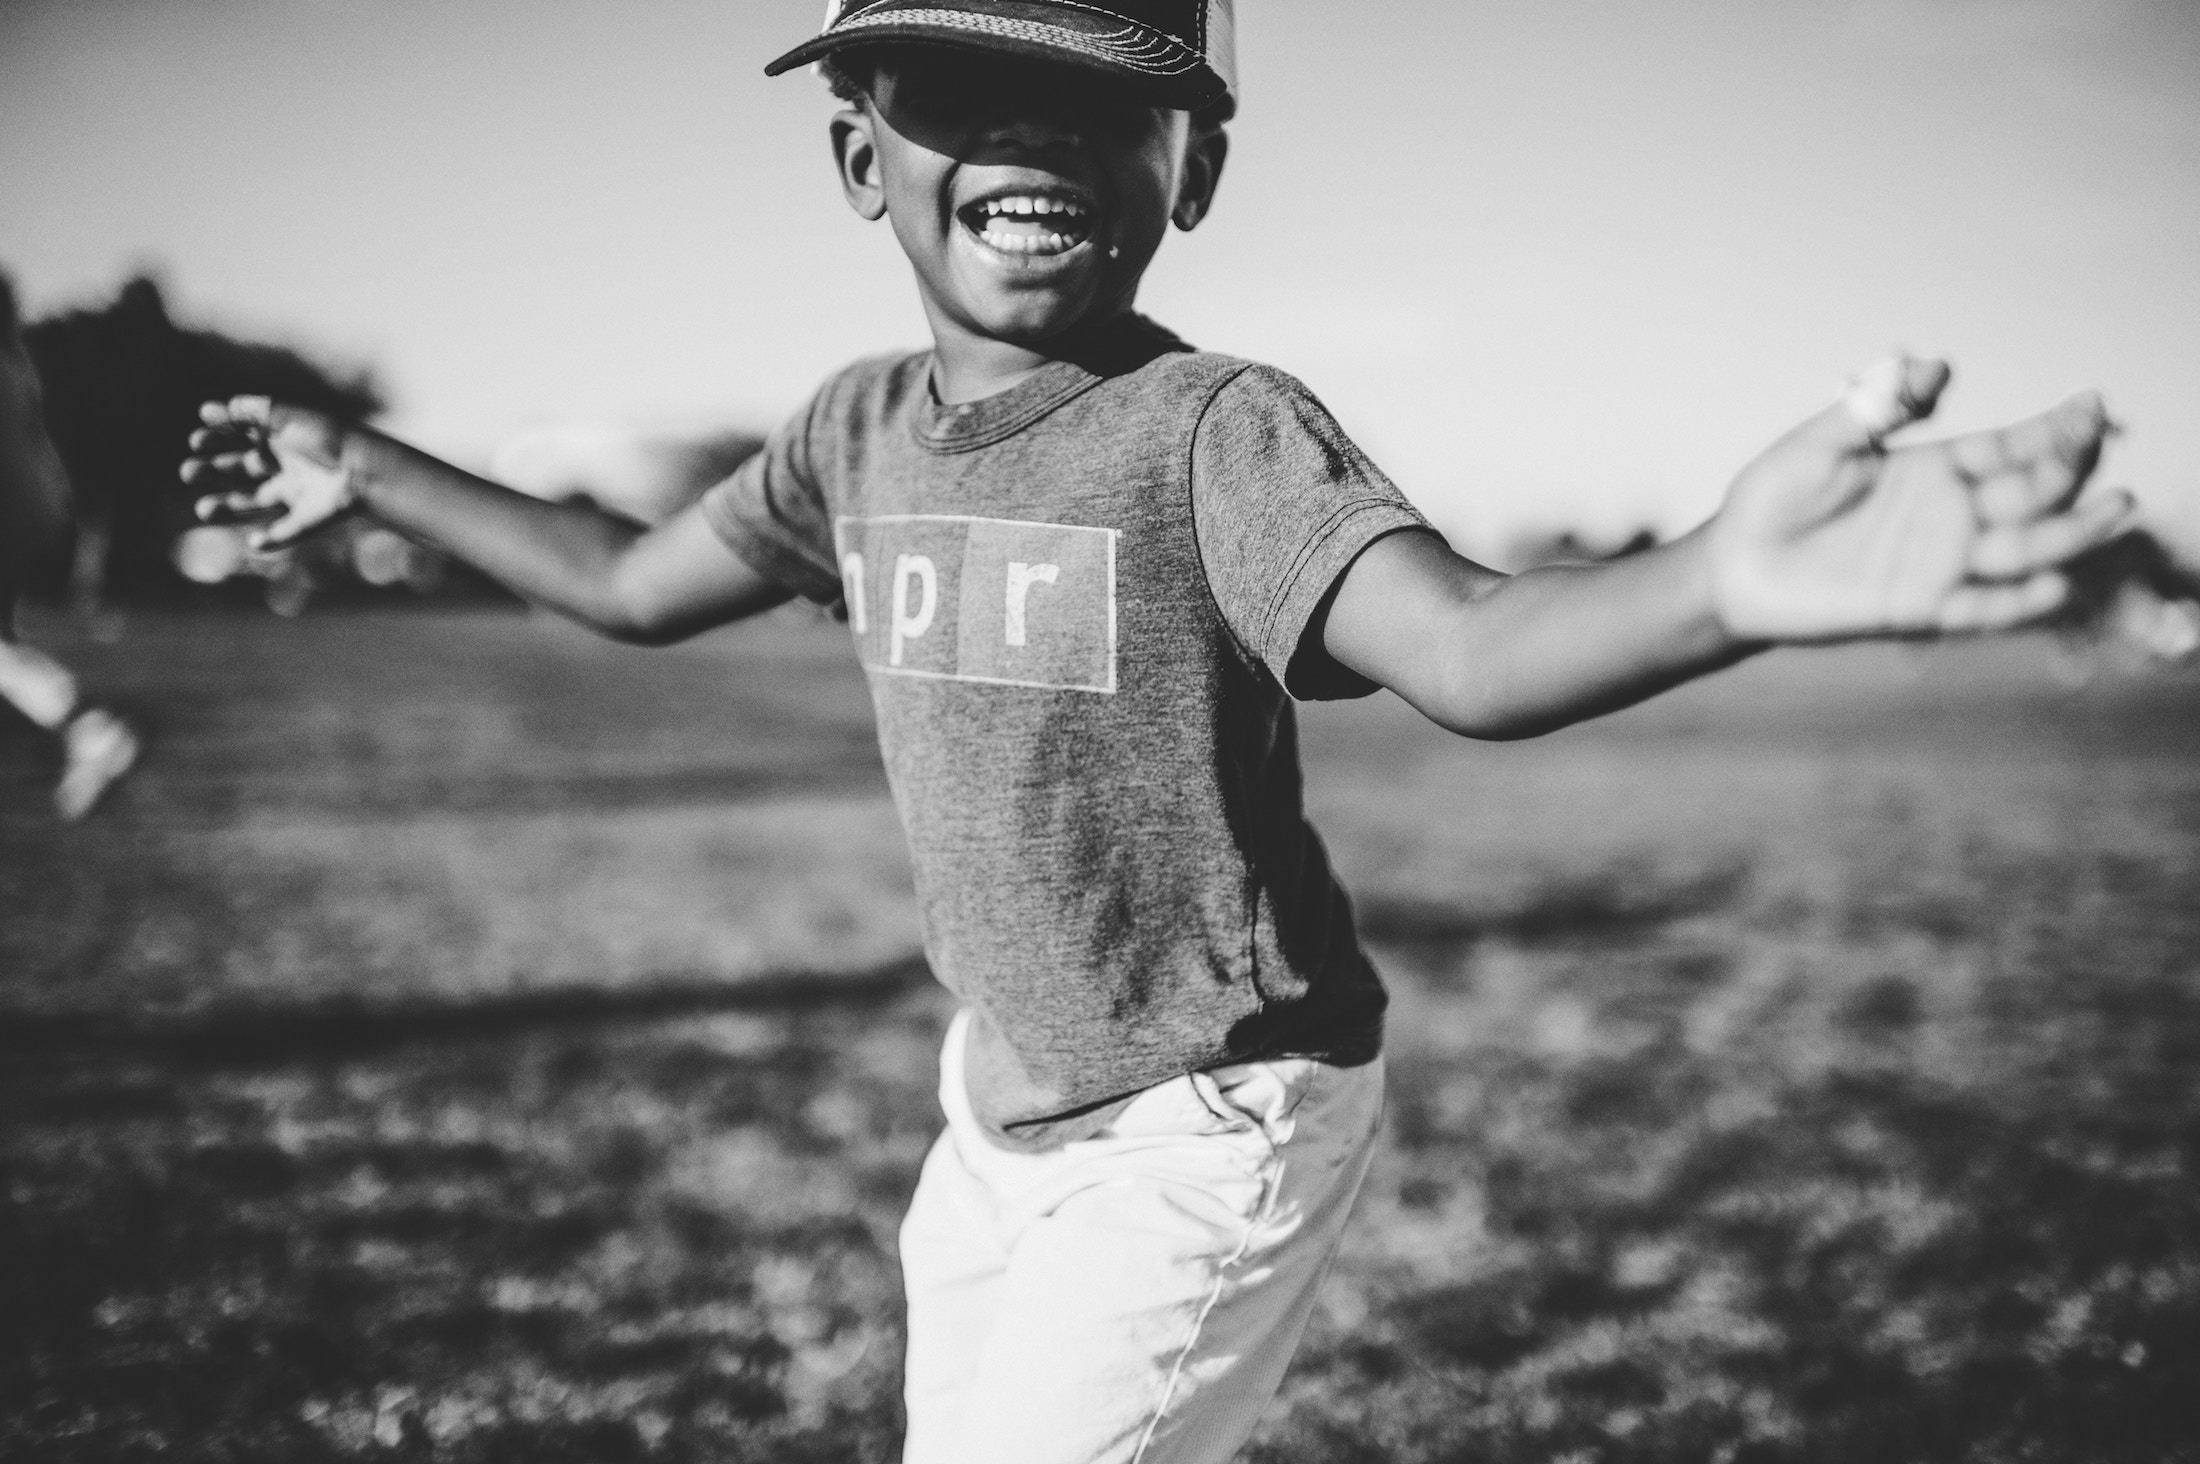 African American child with a baseball helmet on and his arms extended with a smile on his face.